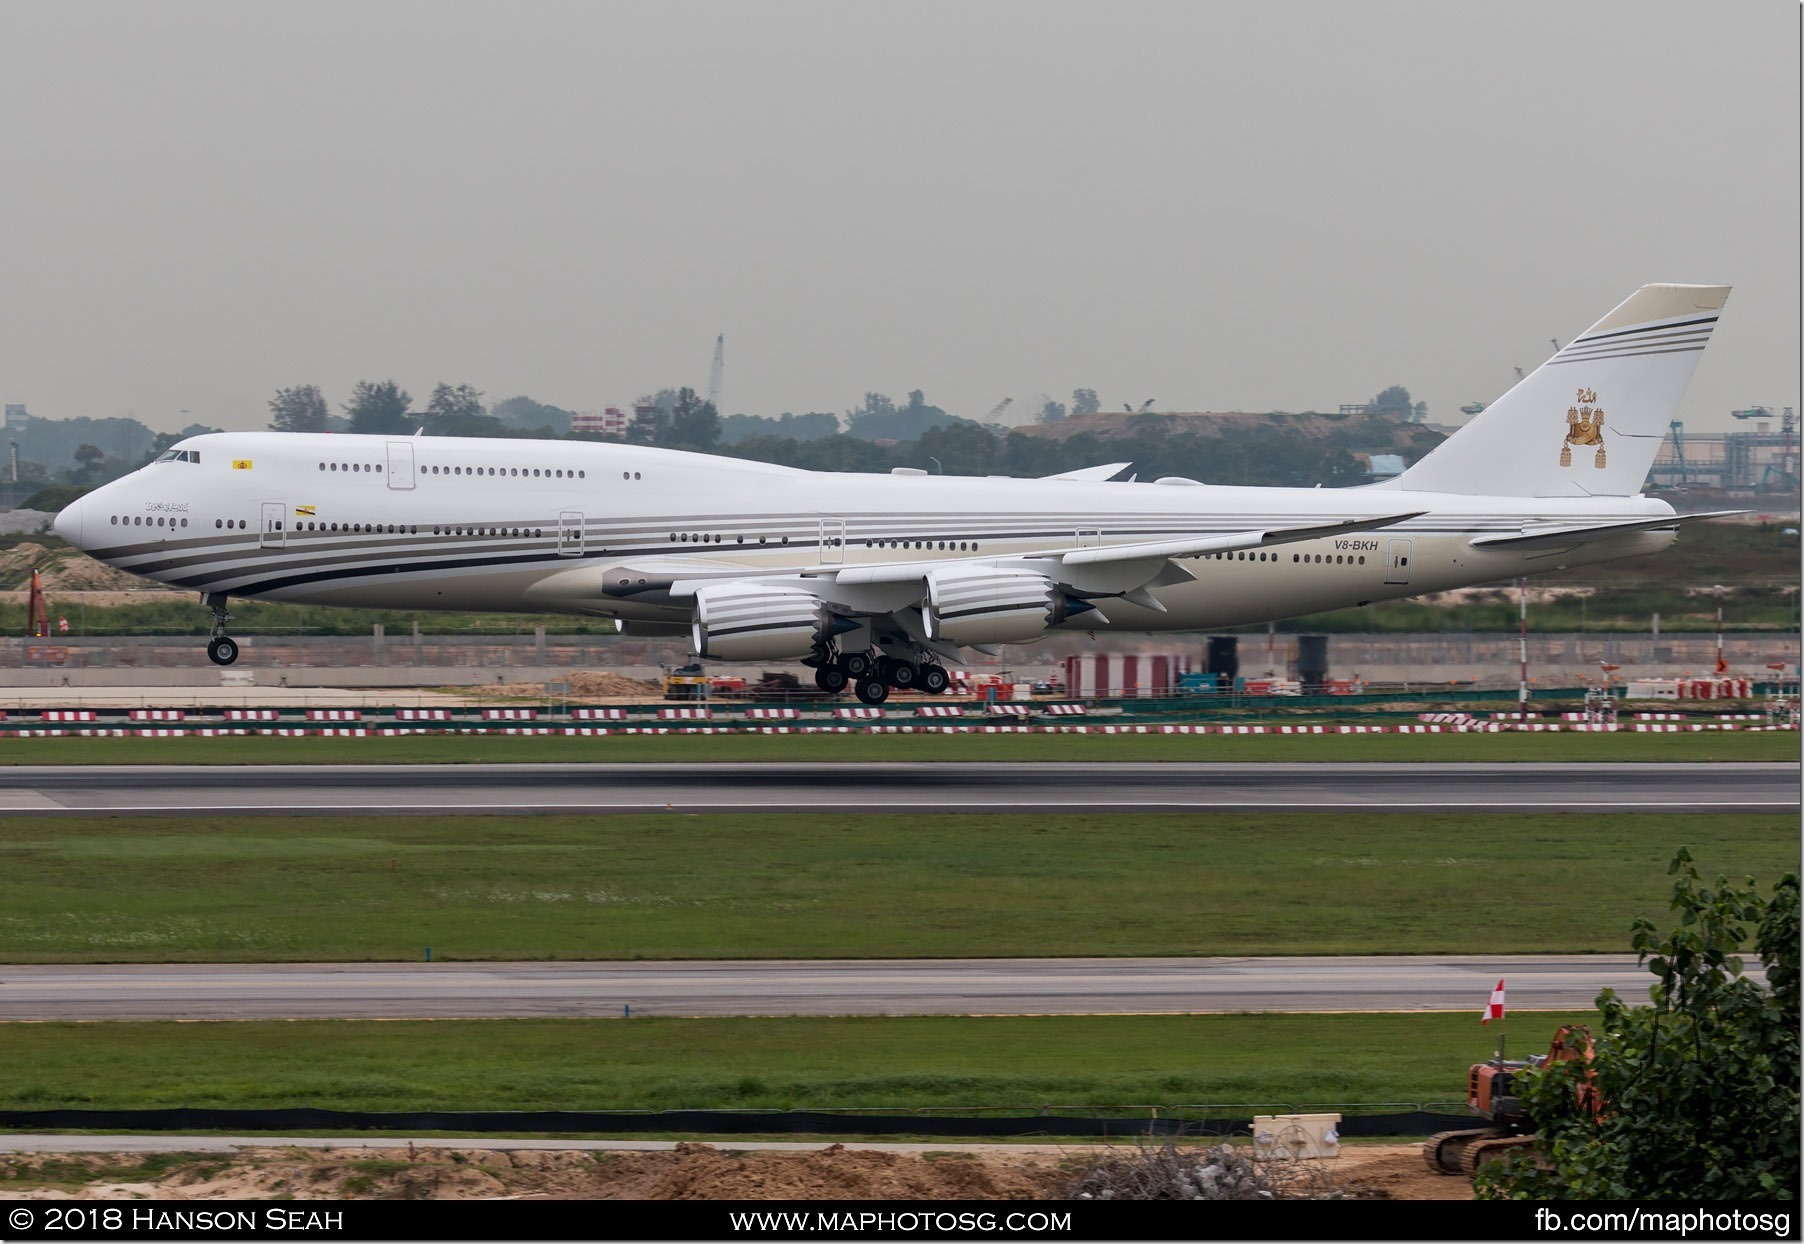 09. Brunei Government Boeing 747